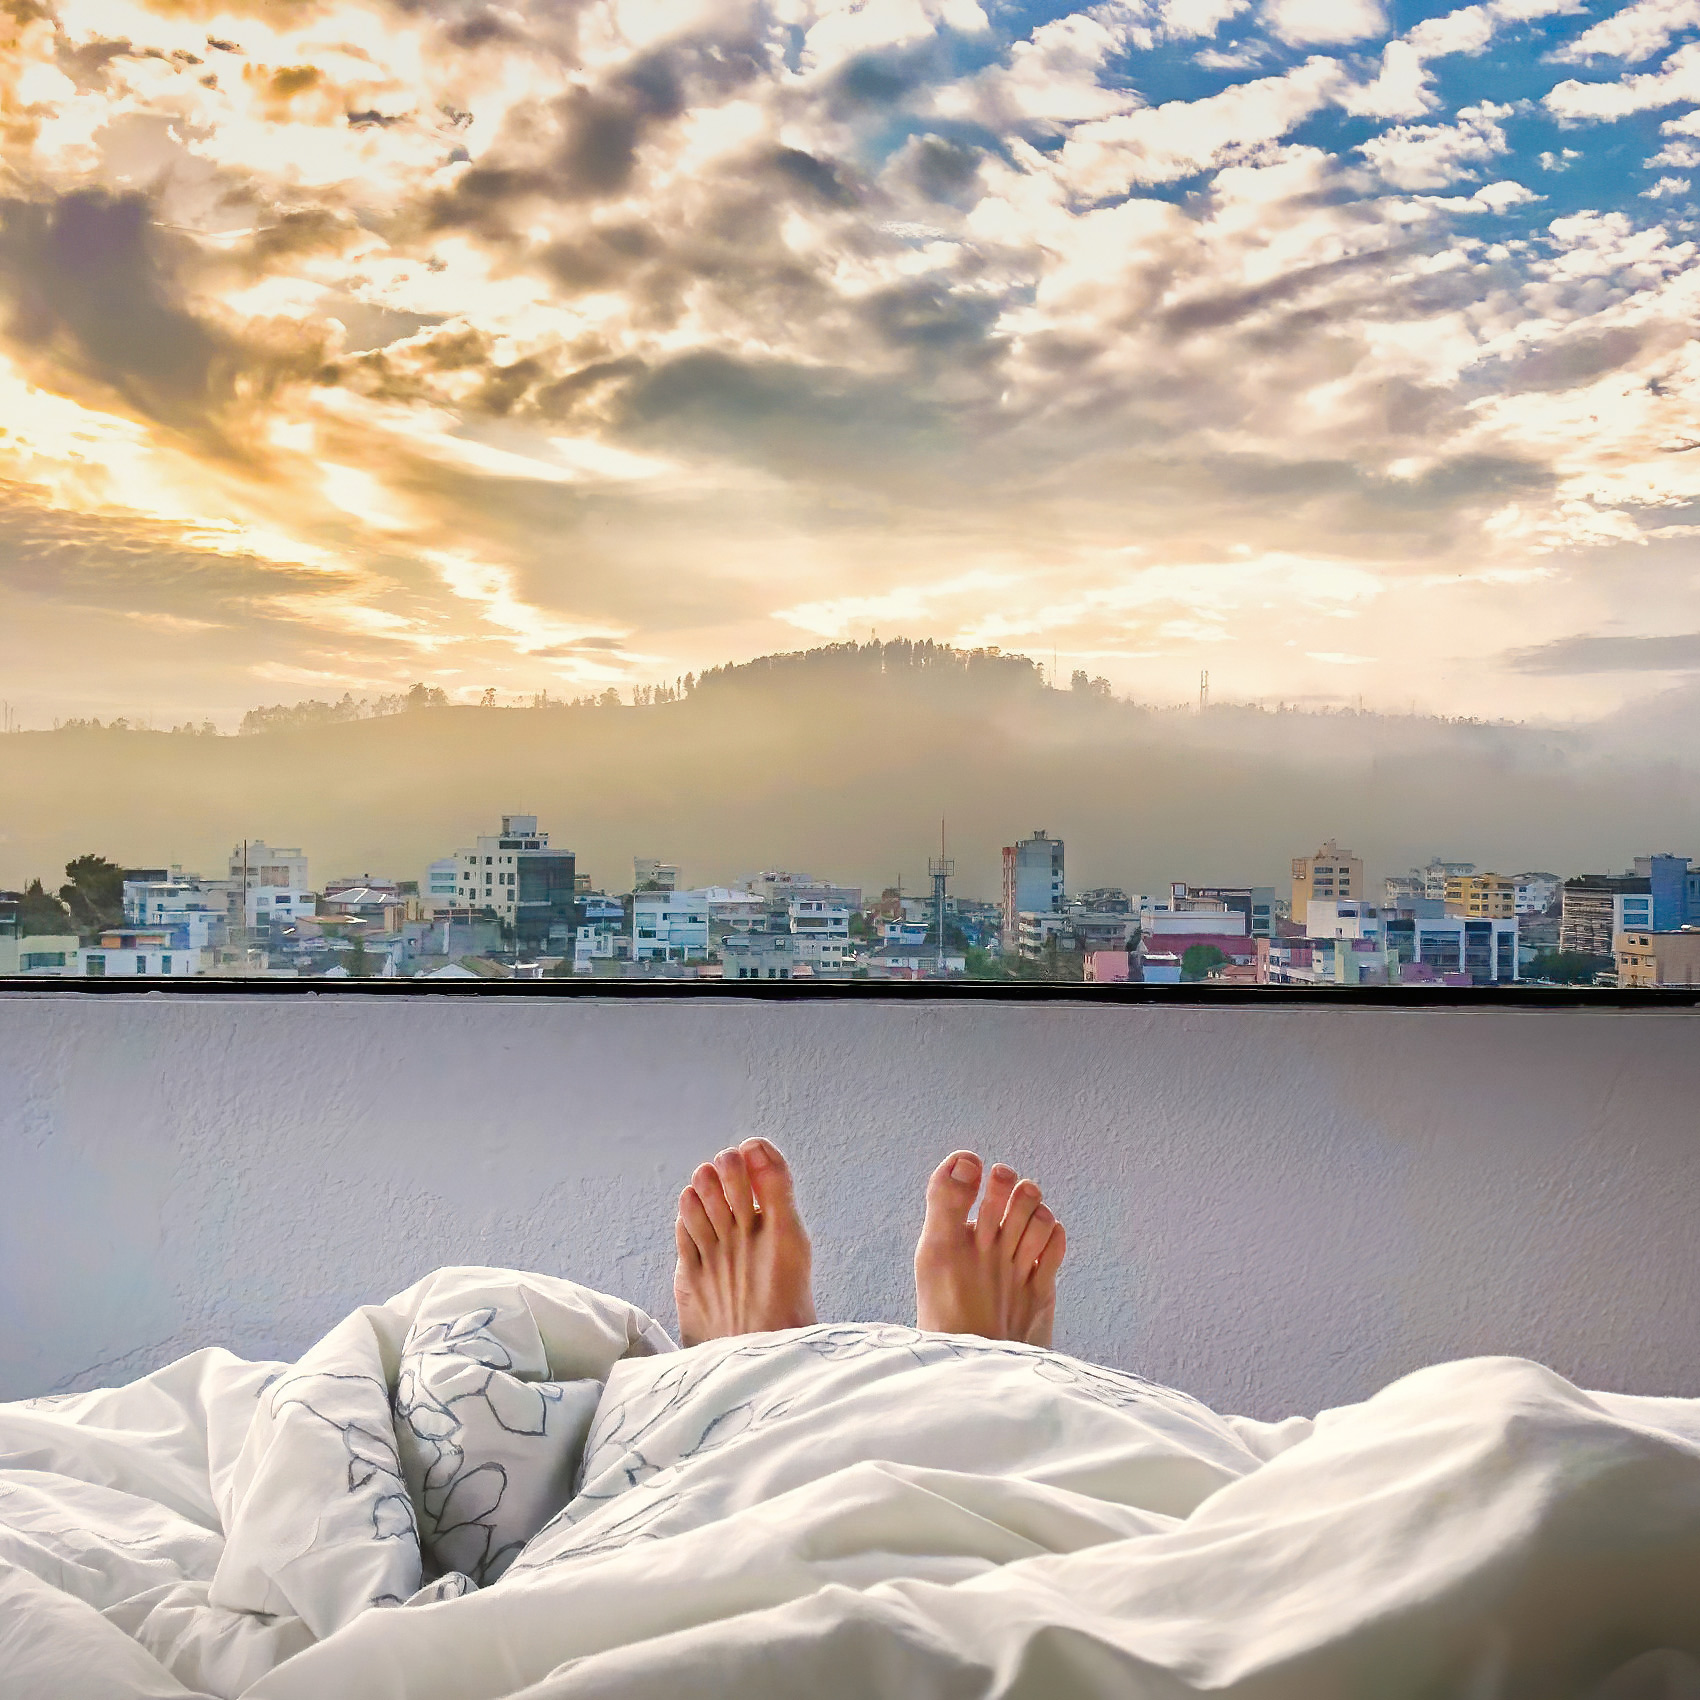 feet-stick-out-from-the-end-of-a-bed-as-the-sun-rising-over-the-city-of-quito-ecuador-appear-behind-them